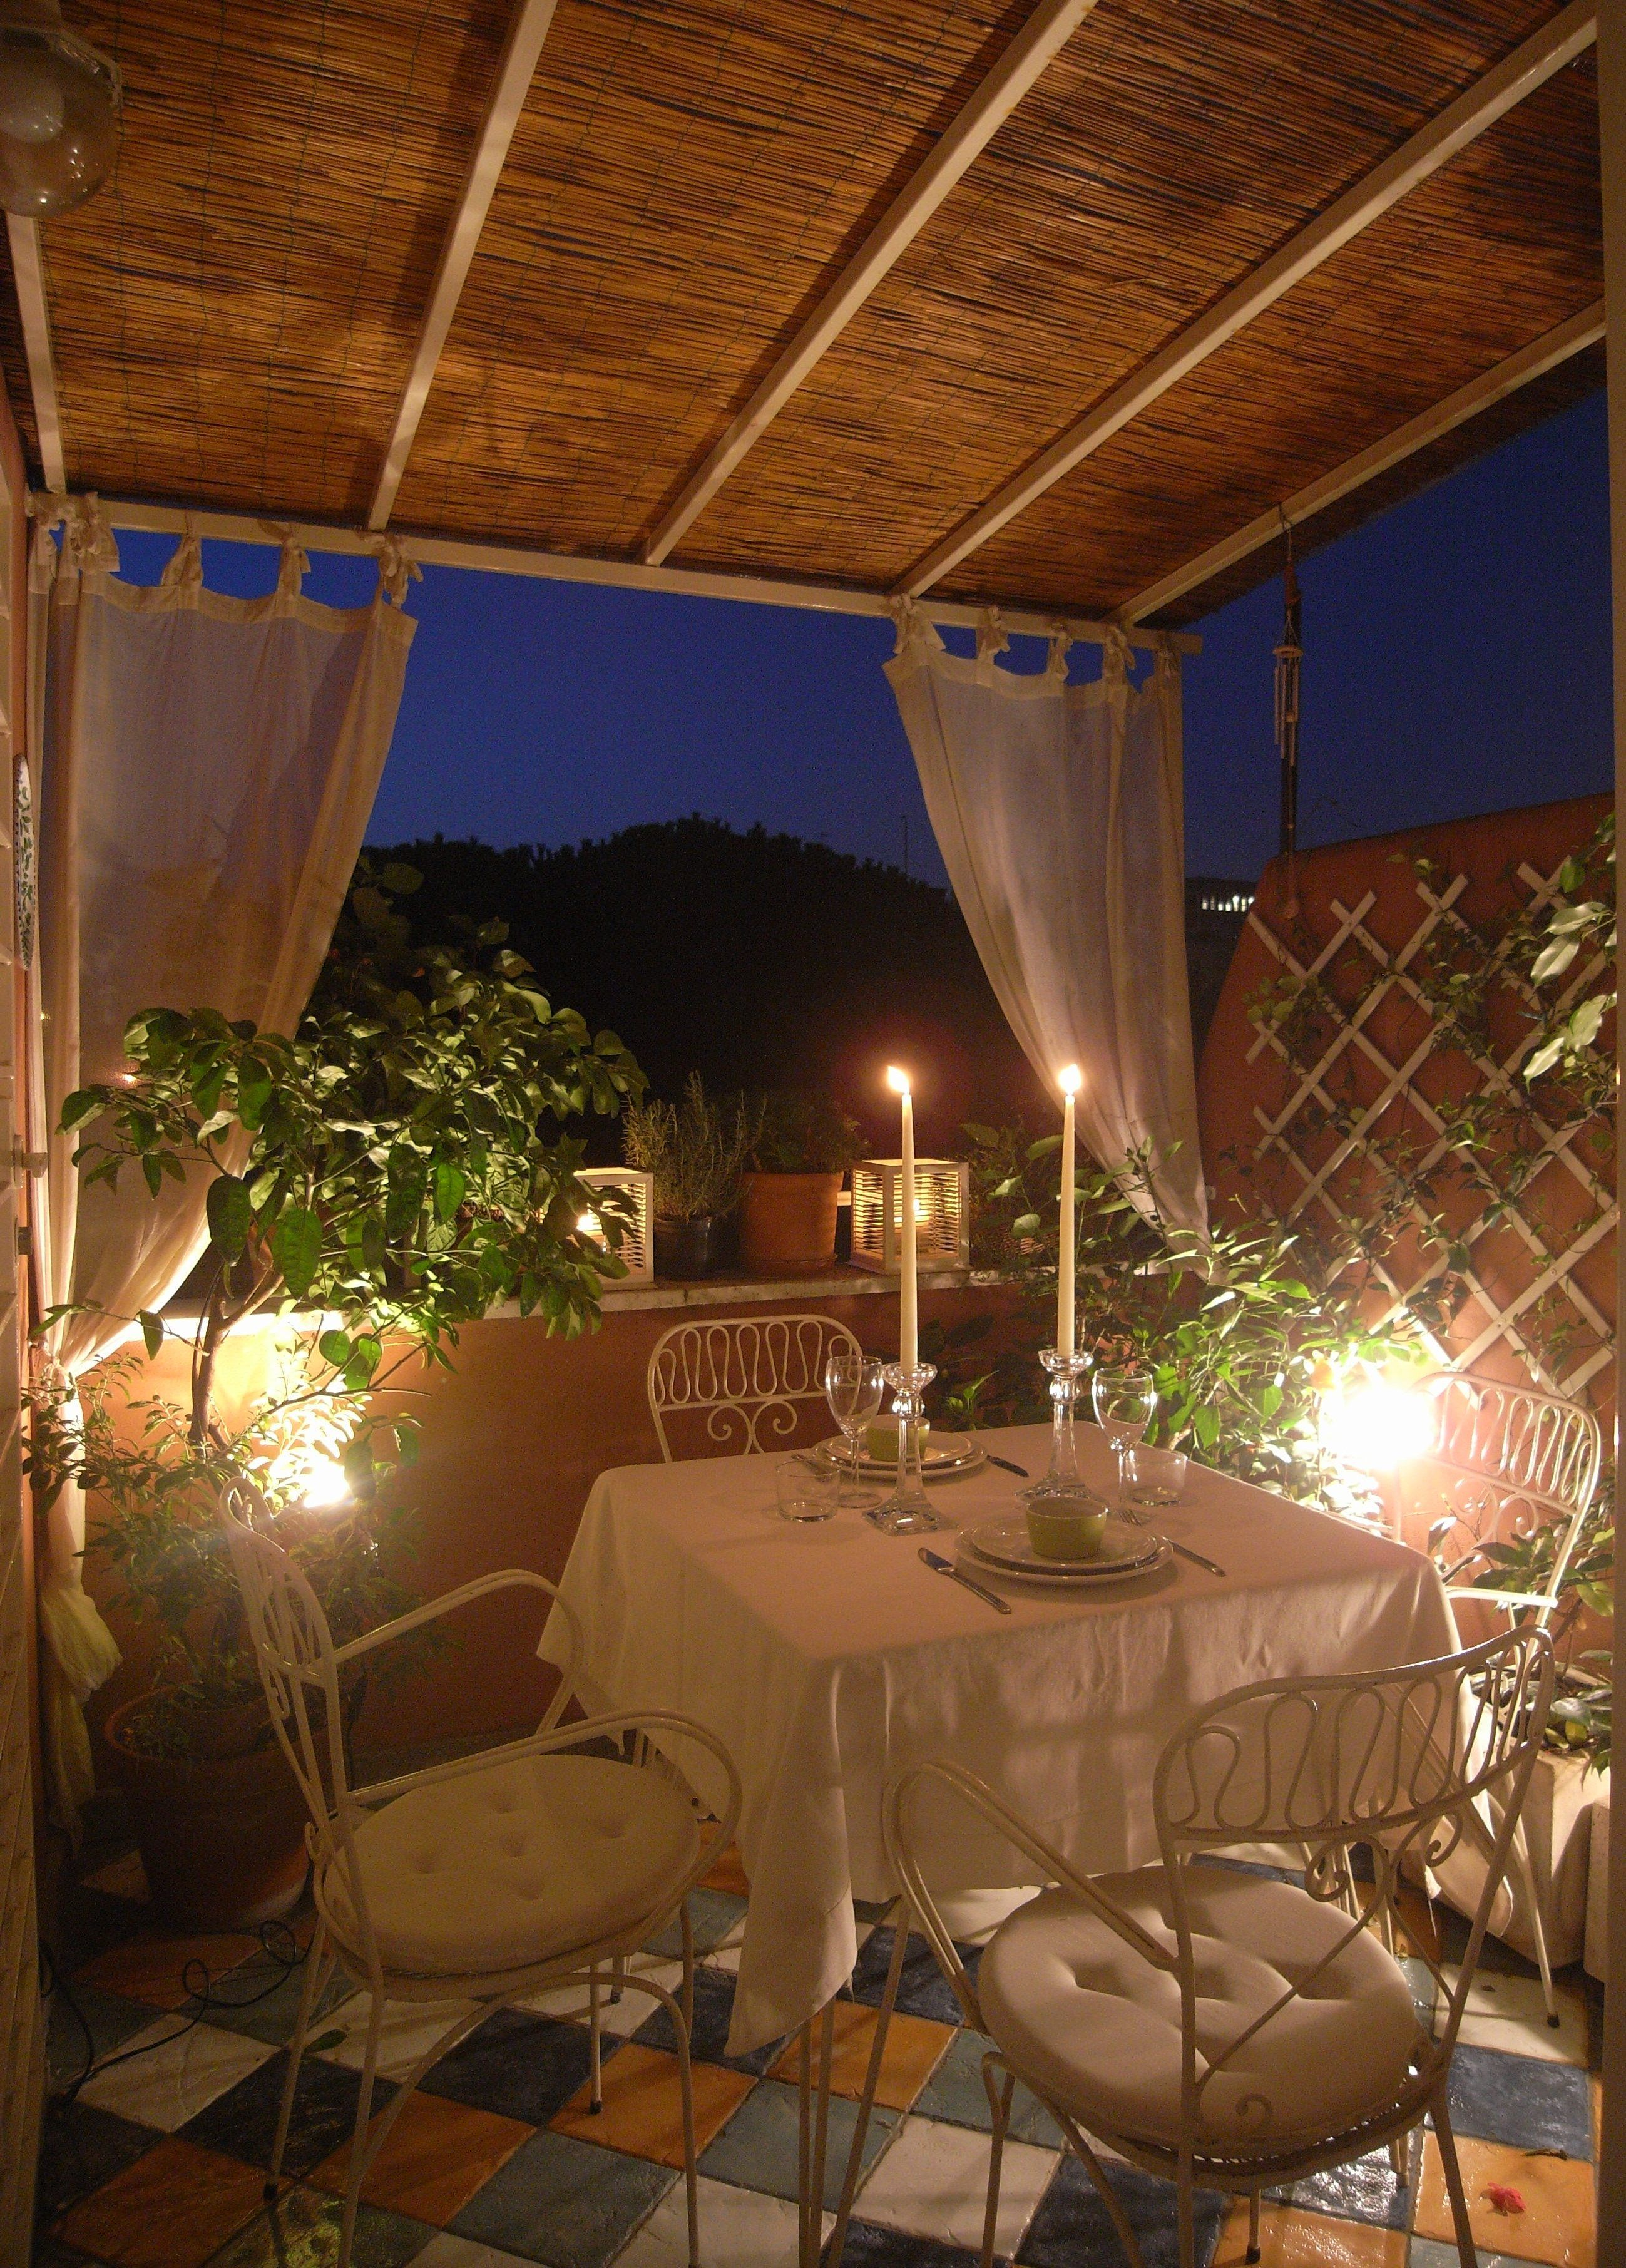 Small apartment of 40 sq.m. The terrace